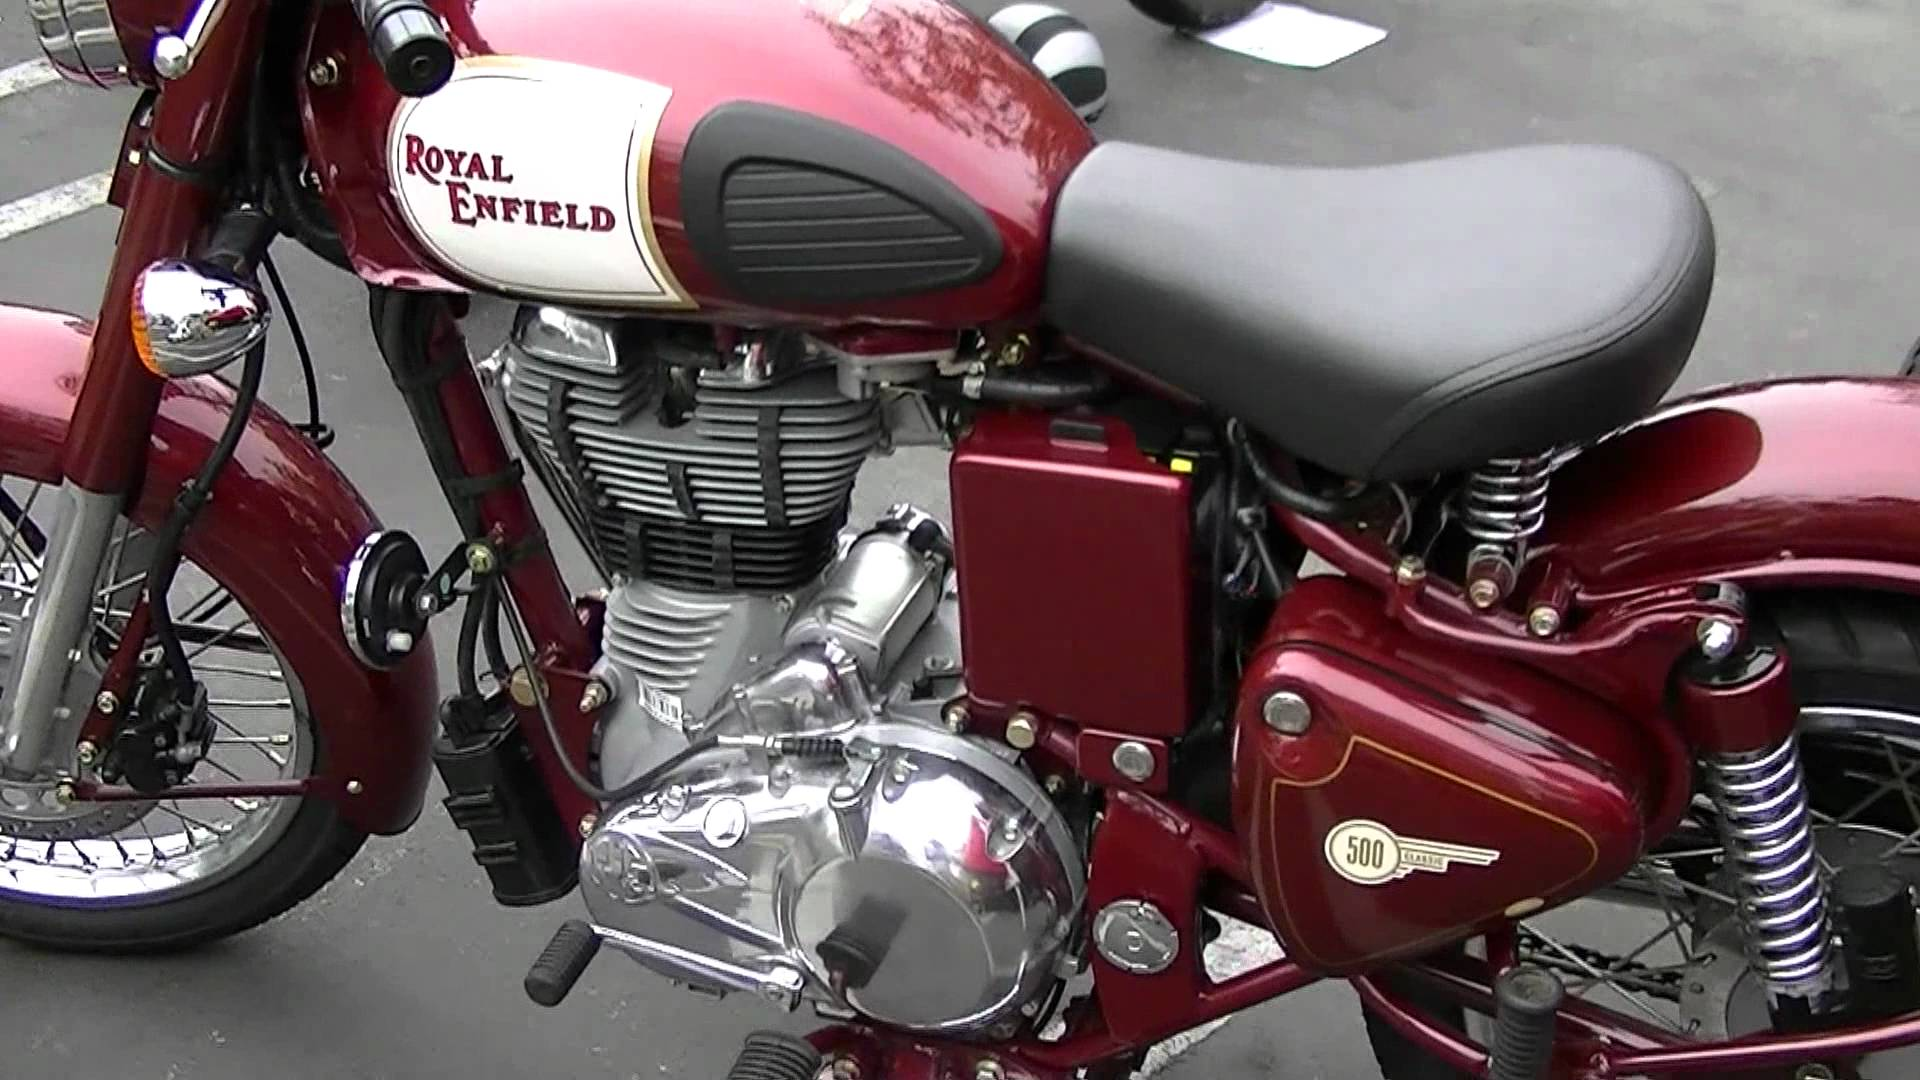 Royal Enfield Bullet 500 Classic images #124005